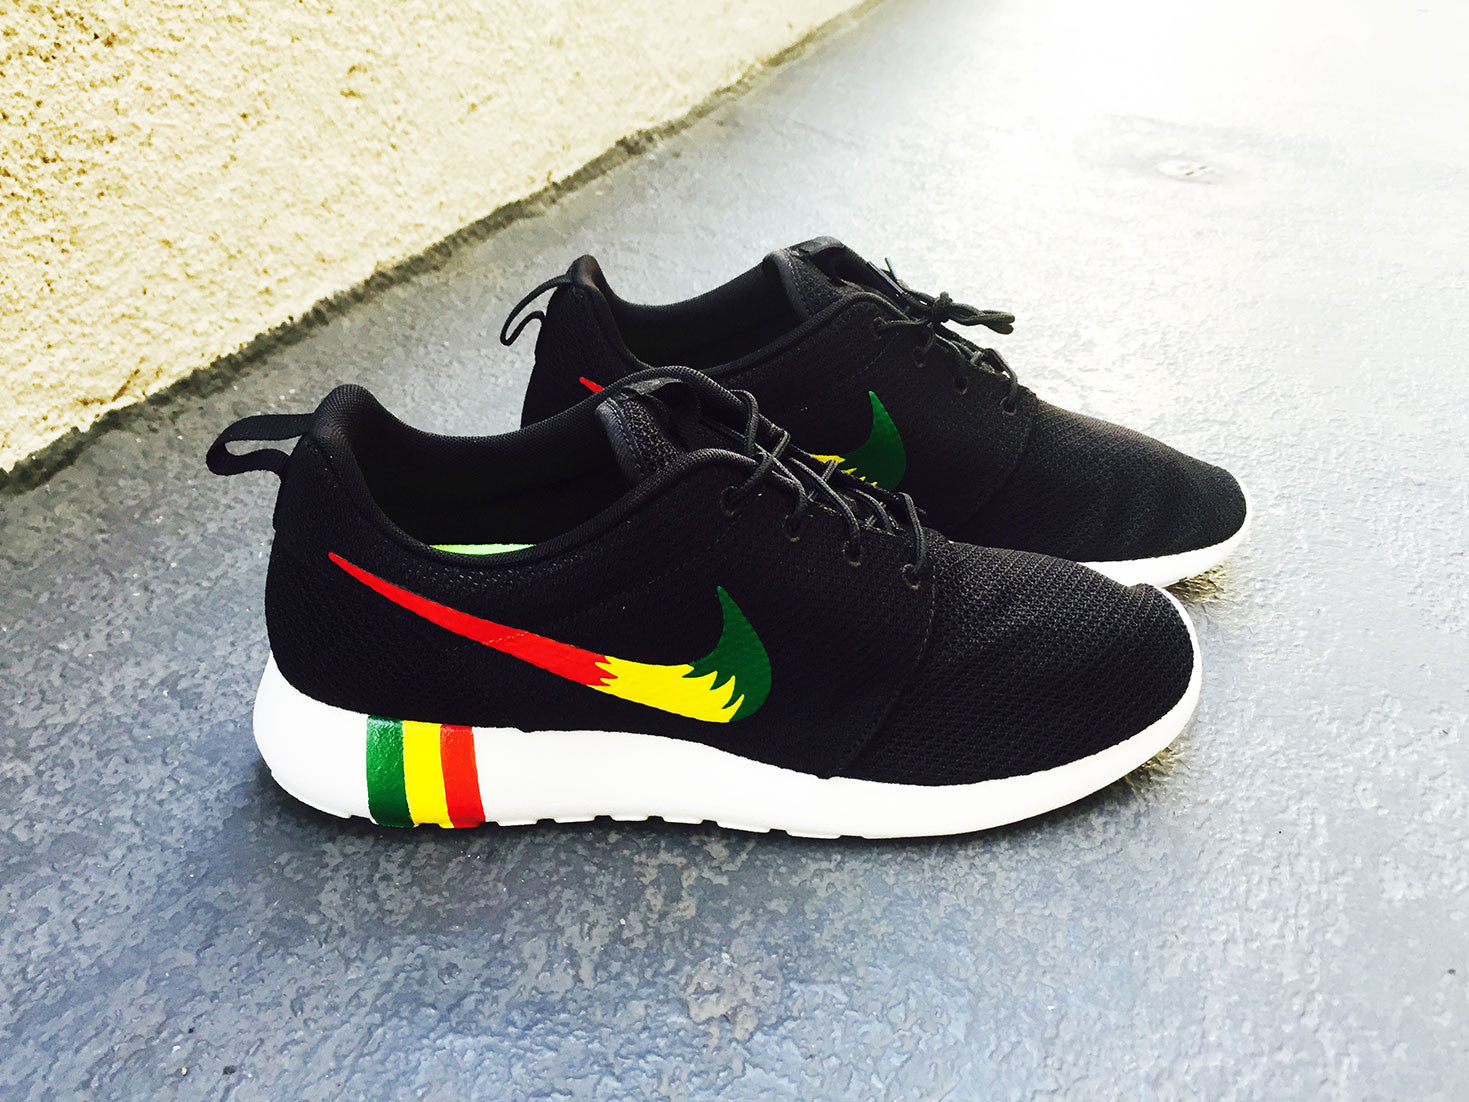 san francisco 806e0 9982d Womens and Mens Custom Rastafari color Nike Roshe Run custom design,  unisex, Rasta colors